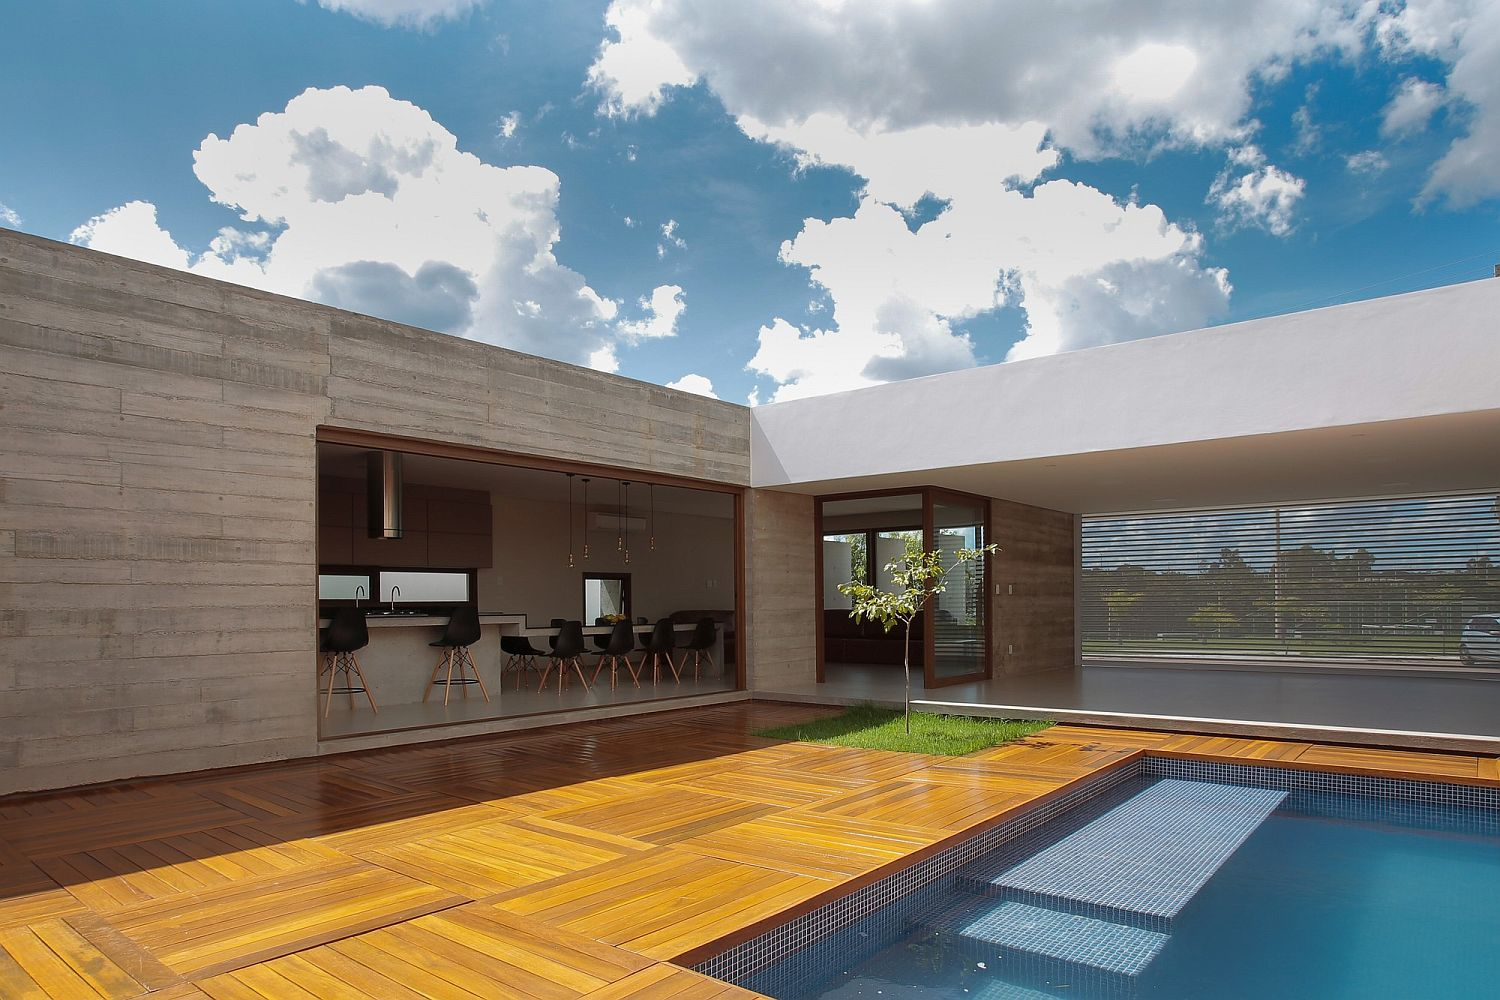 Pool area of the private Brazilian Residence